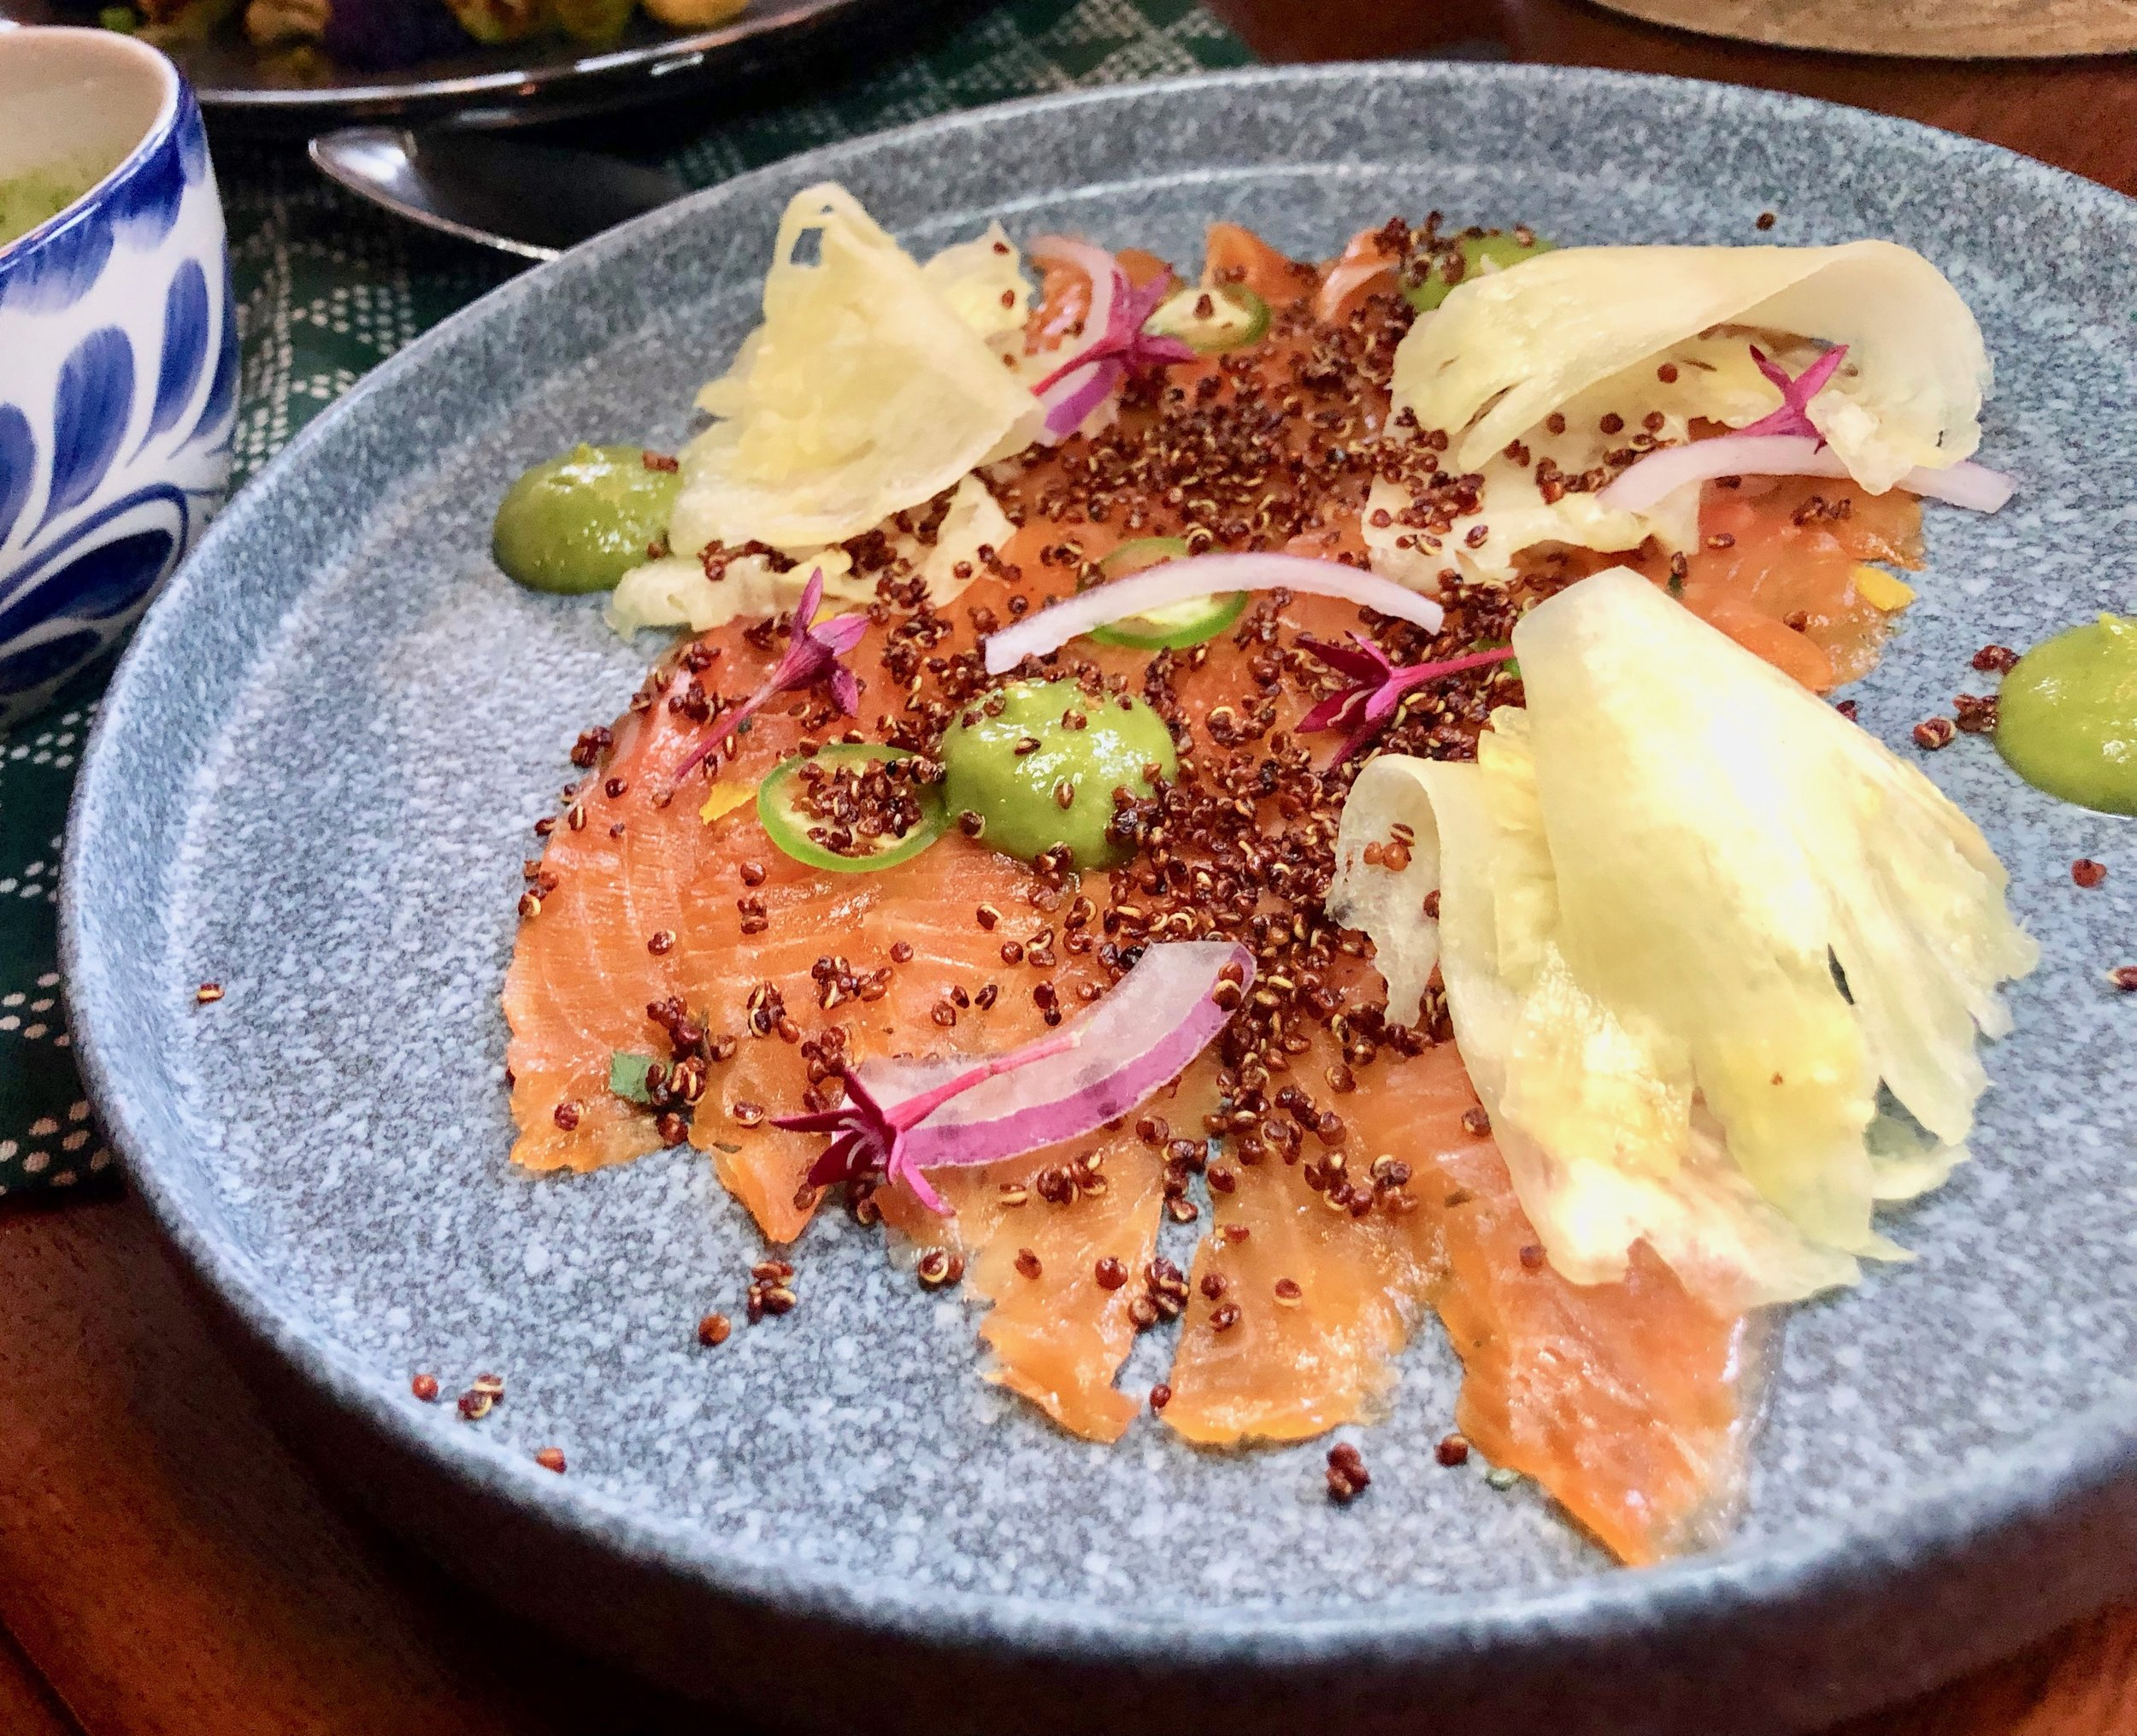 Reyes Mezcaleria – Arctic Char Aguachile. Essentially, this fish dish tastes like a good smoked salmon. It's served with pineapple aguachile – kind of a refreshing marinade, as well as puffed quinoa, avocado, red onion and serrano pepper.